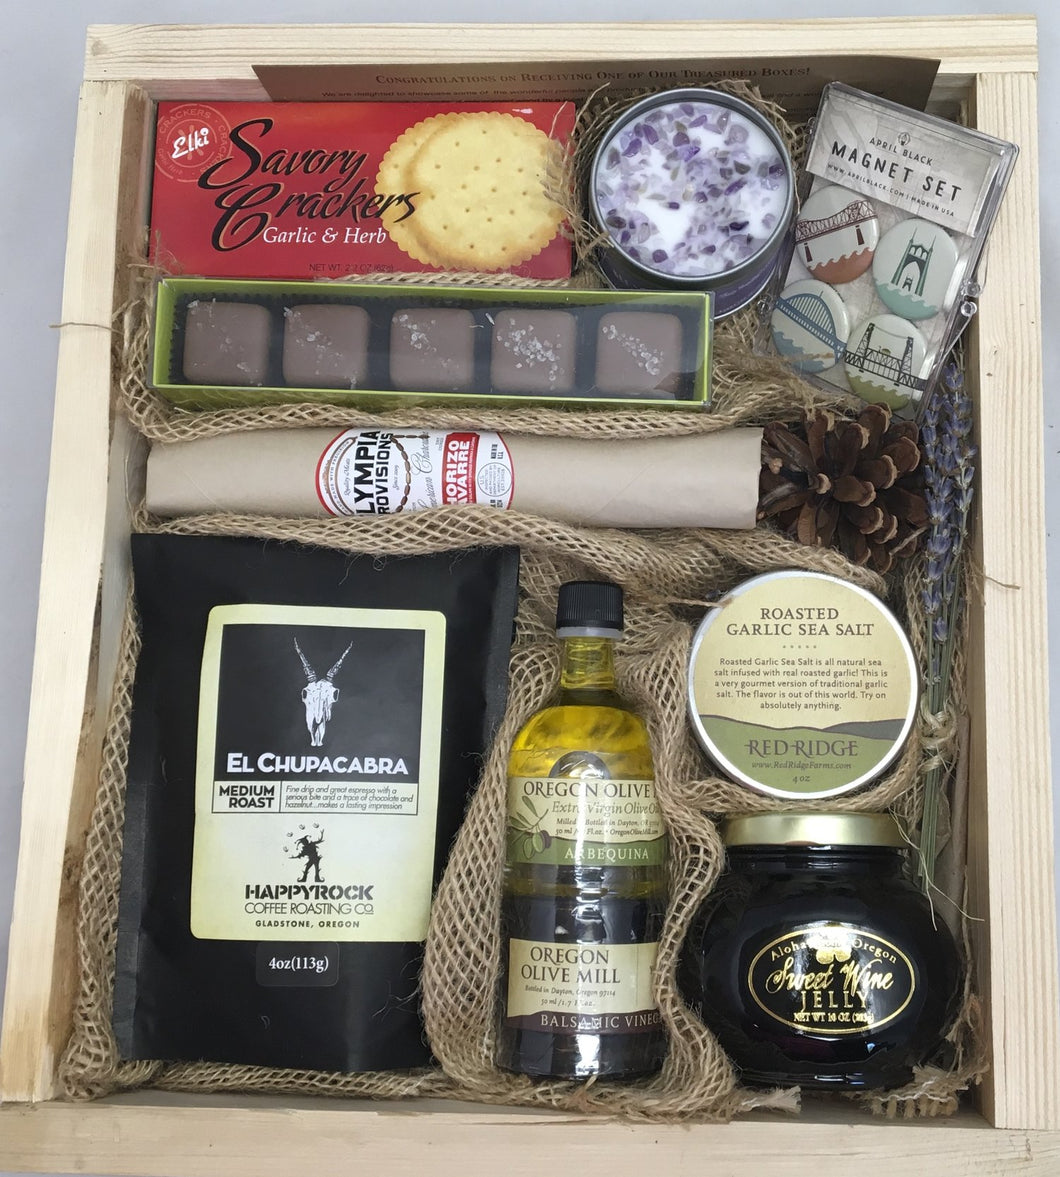 Sample box containing coffee, olive oil, balsamic vinegar, jam, garlic salt, salami, candle, magnet set, chocolate truffles, and crackers.